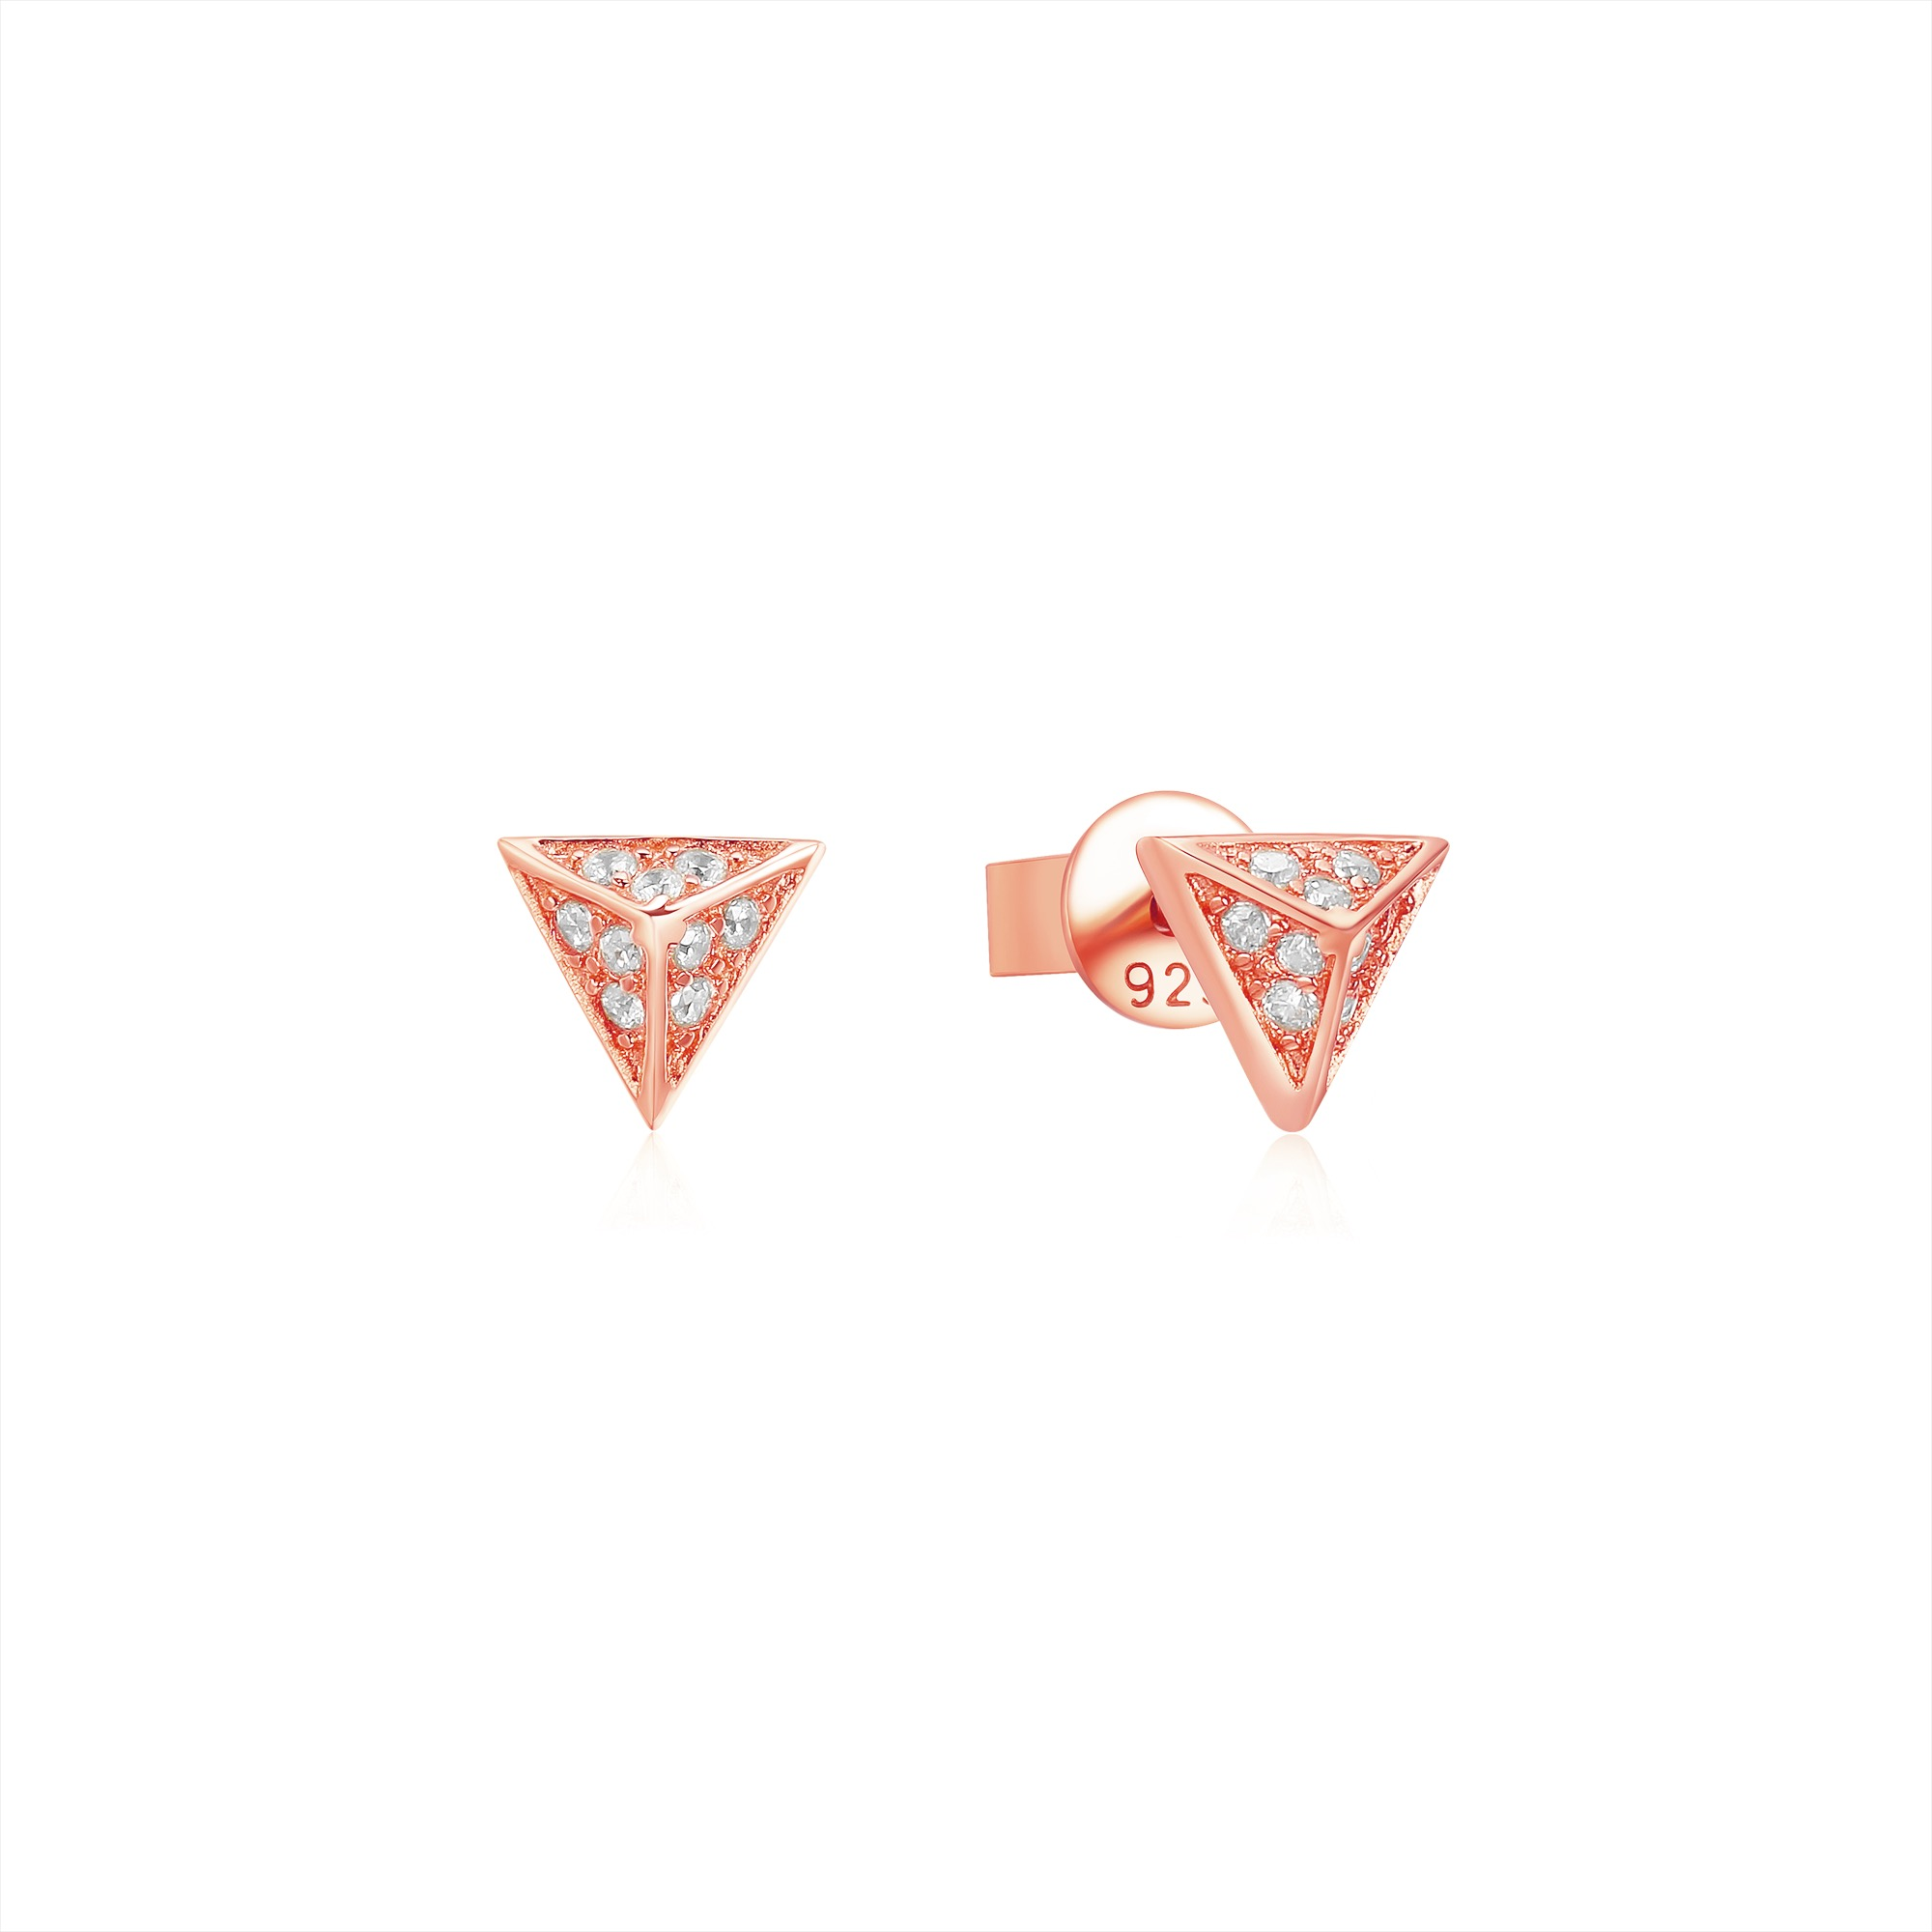 405225a39 Triangle Pyramid CZ Pave Stud Earrings in Sterling Silver Rose Gold ...